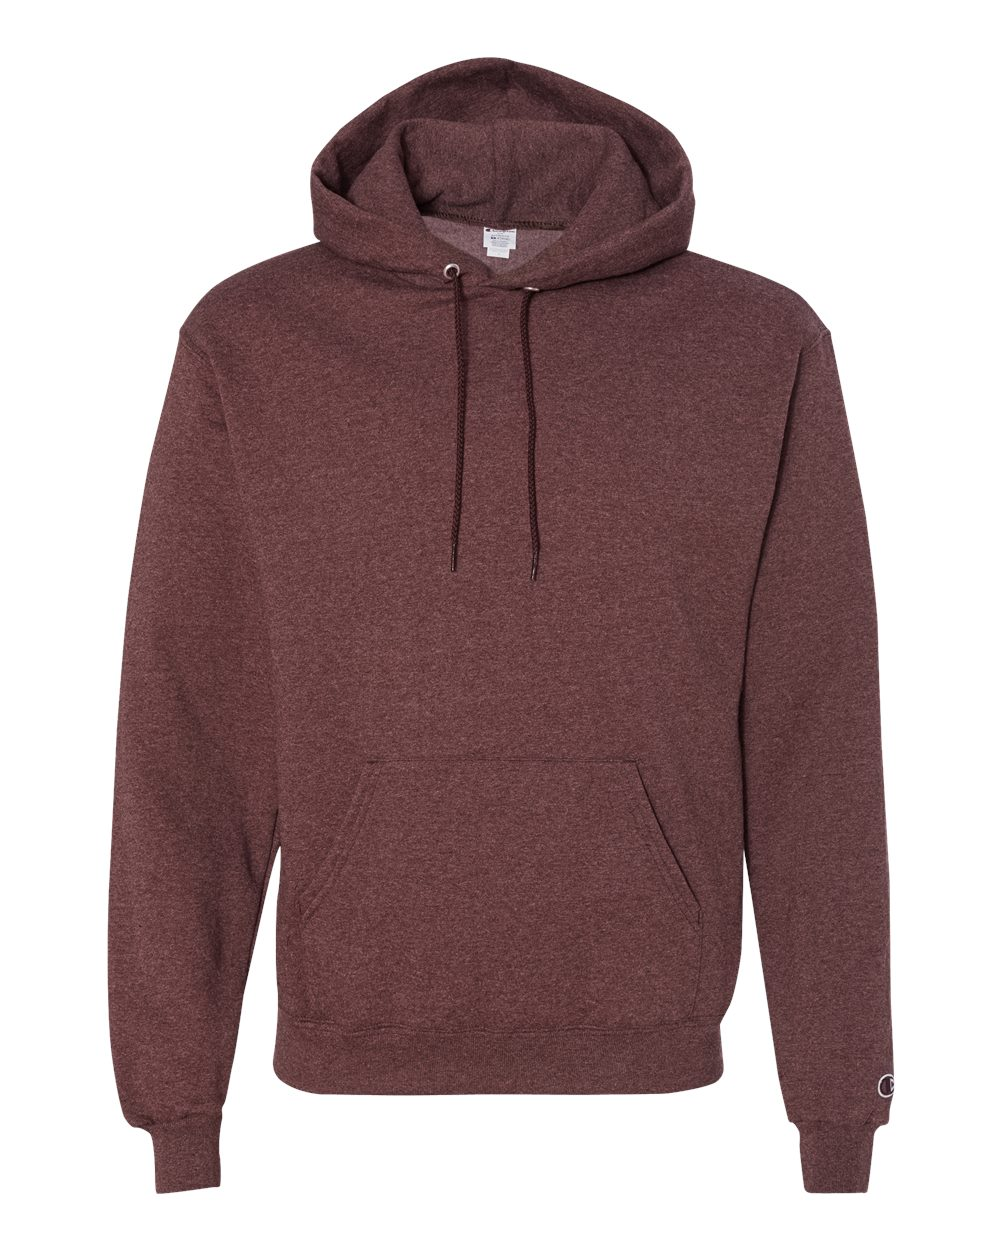 Champion-Mens-Double-Dry-Eco-Hooded-Sweatshirt-Hoodie-Pullover-S700-up-to-3XL miniature 24